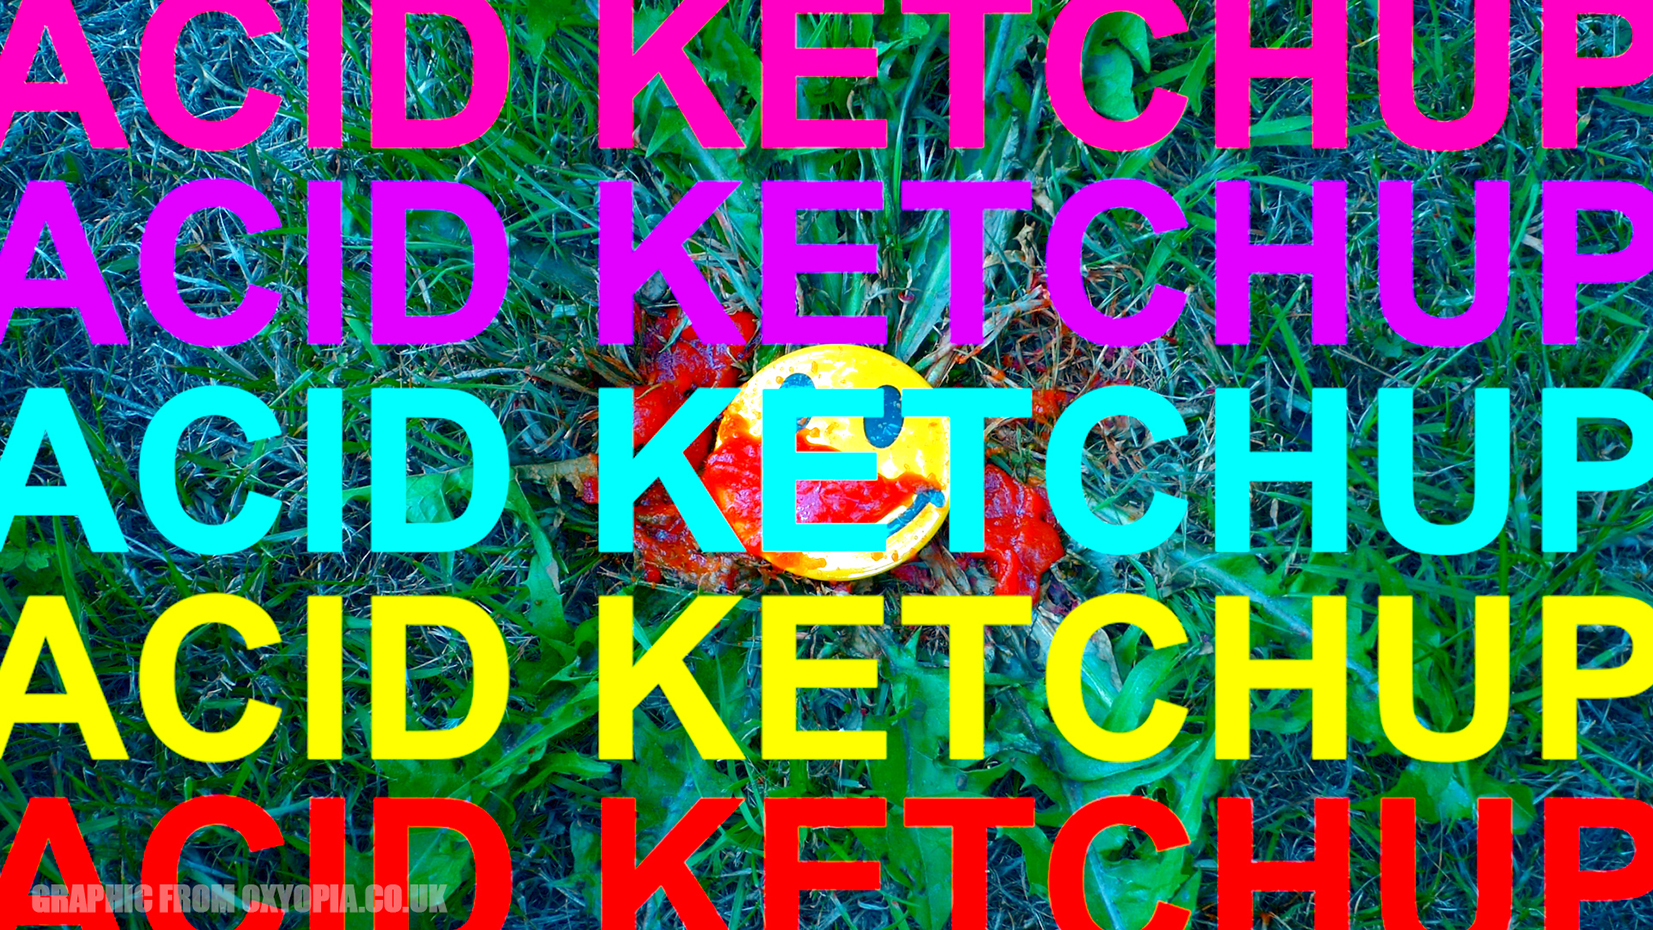 Acid Ketchup The Line up